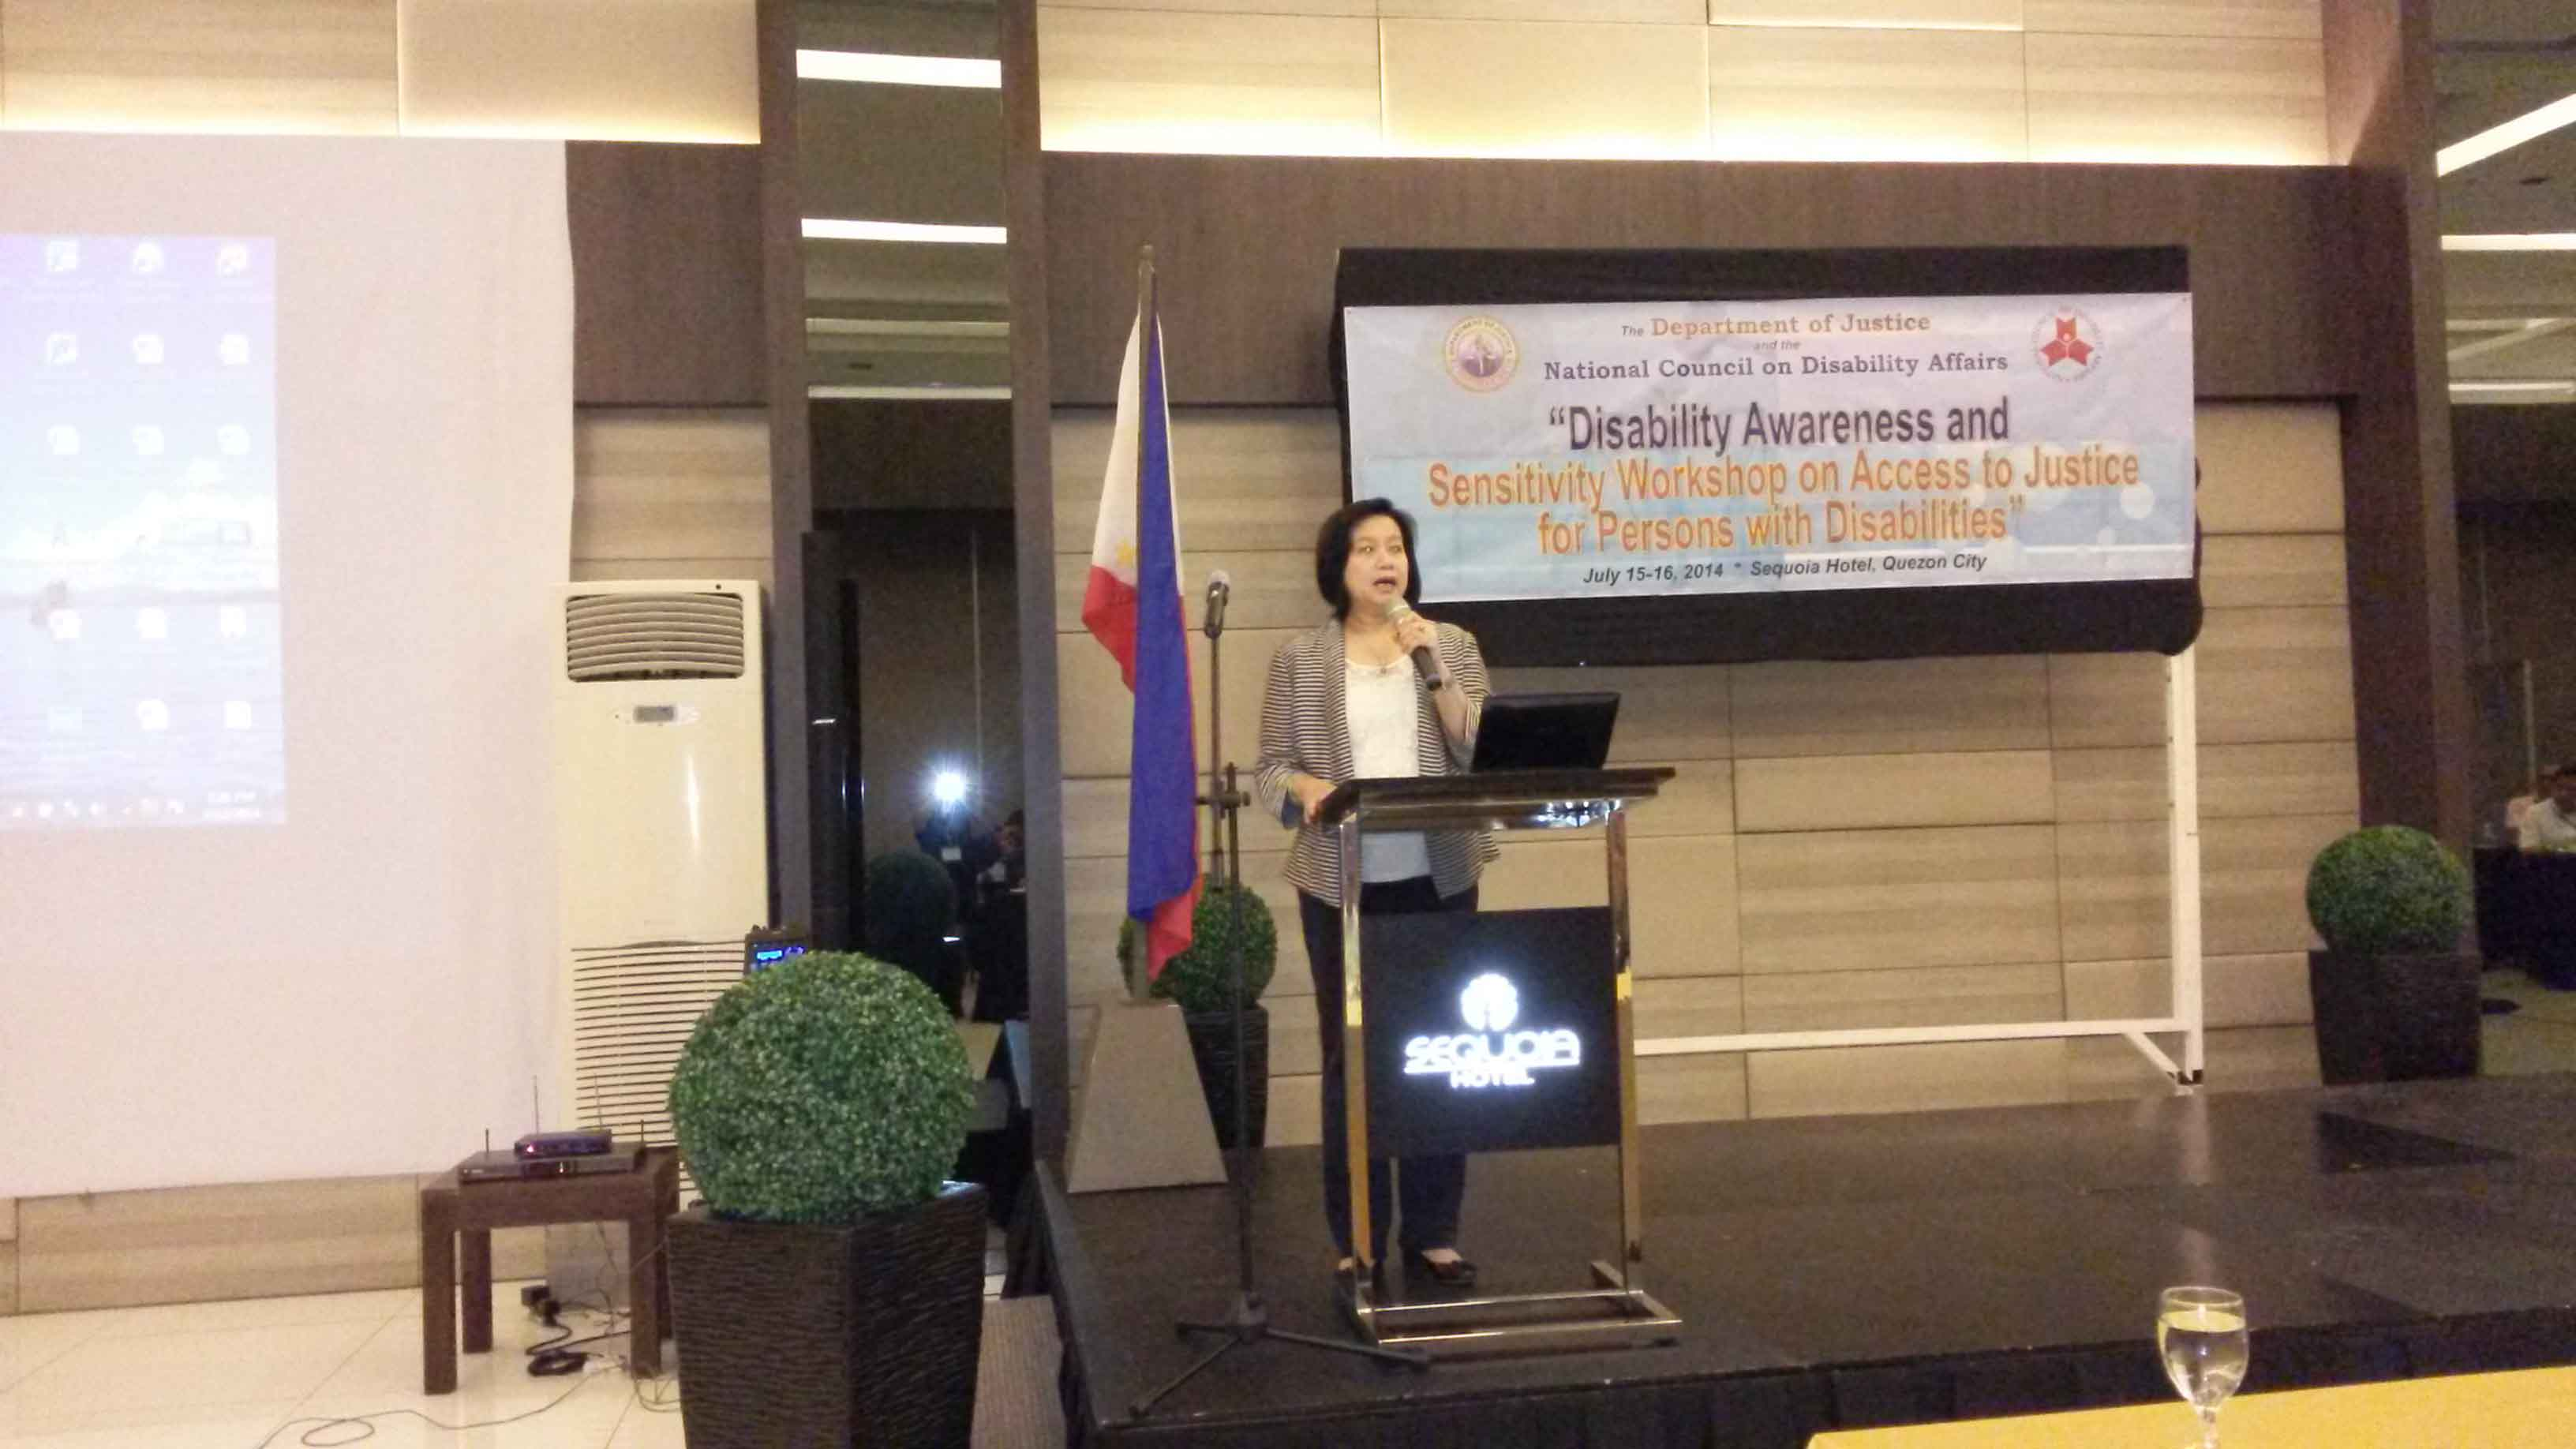 Atty. Tanodra-Armamento delivering her opening remarks